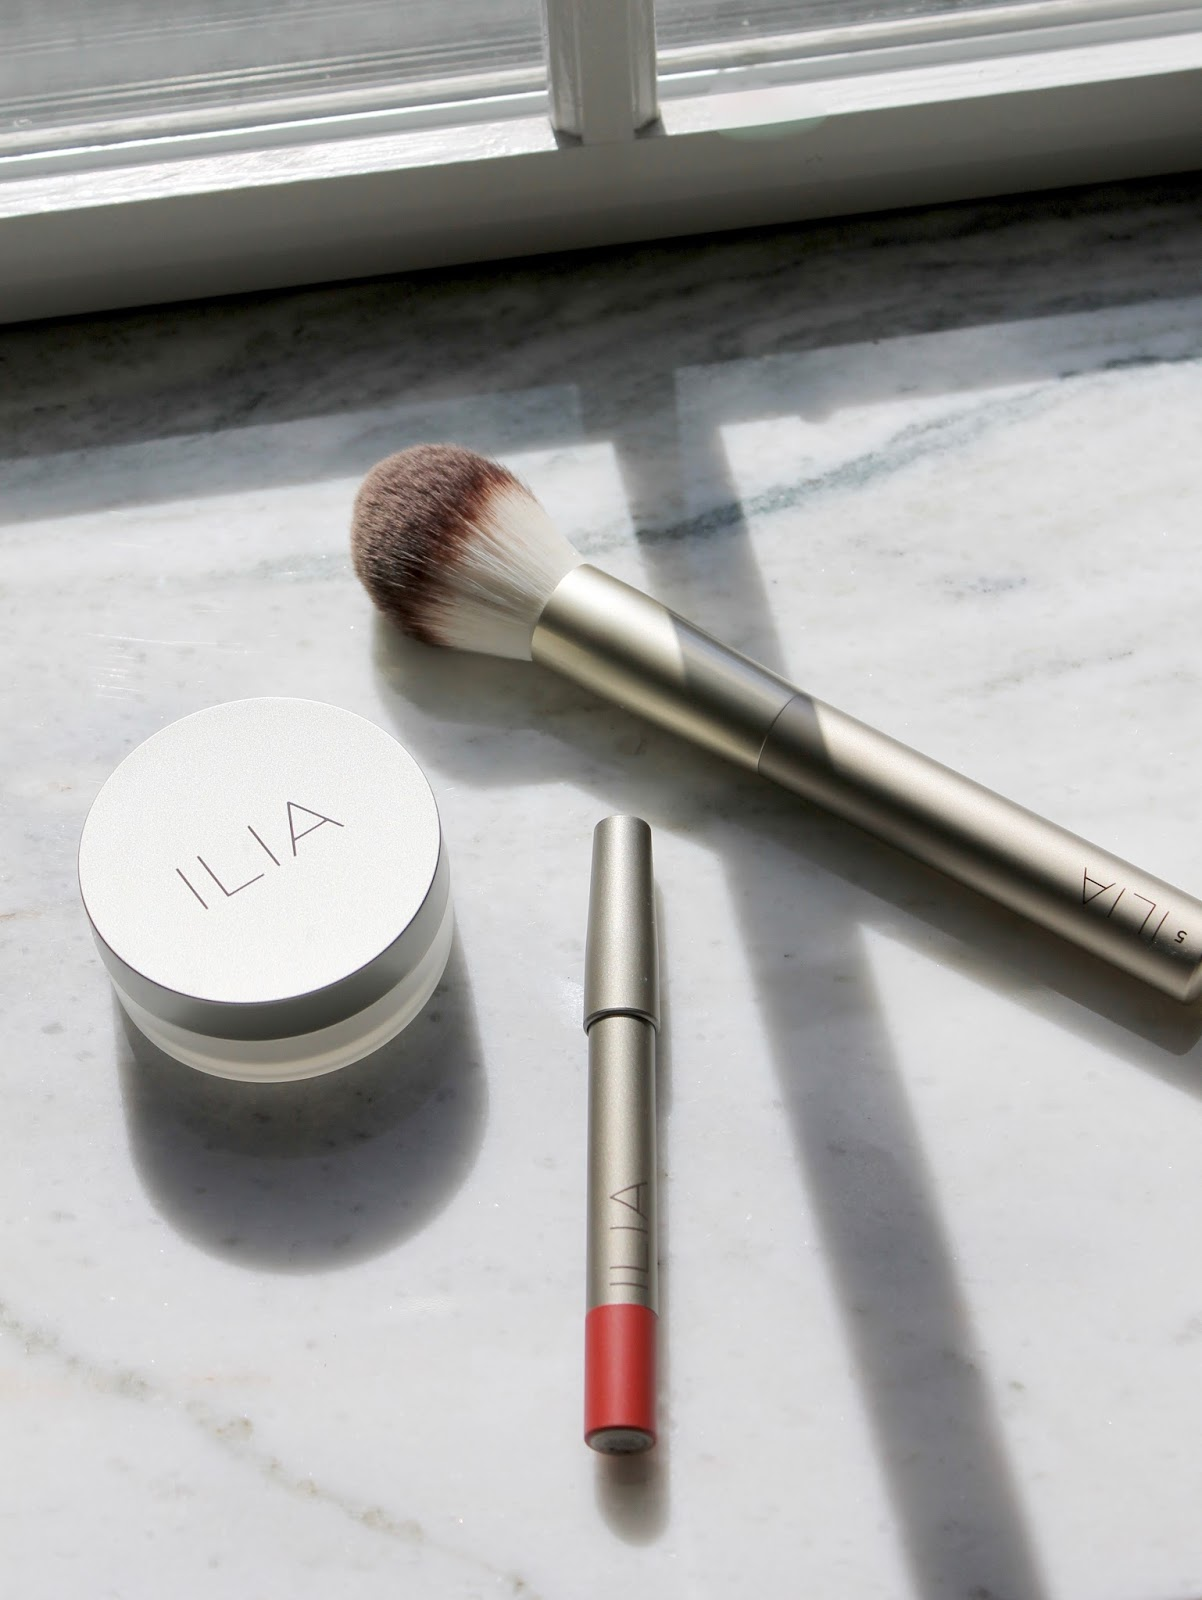 ILIA'S NOT JUST FOR GREEN BEAUTY LOVERS